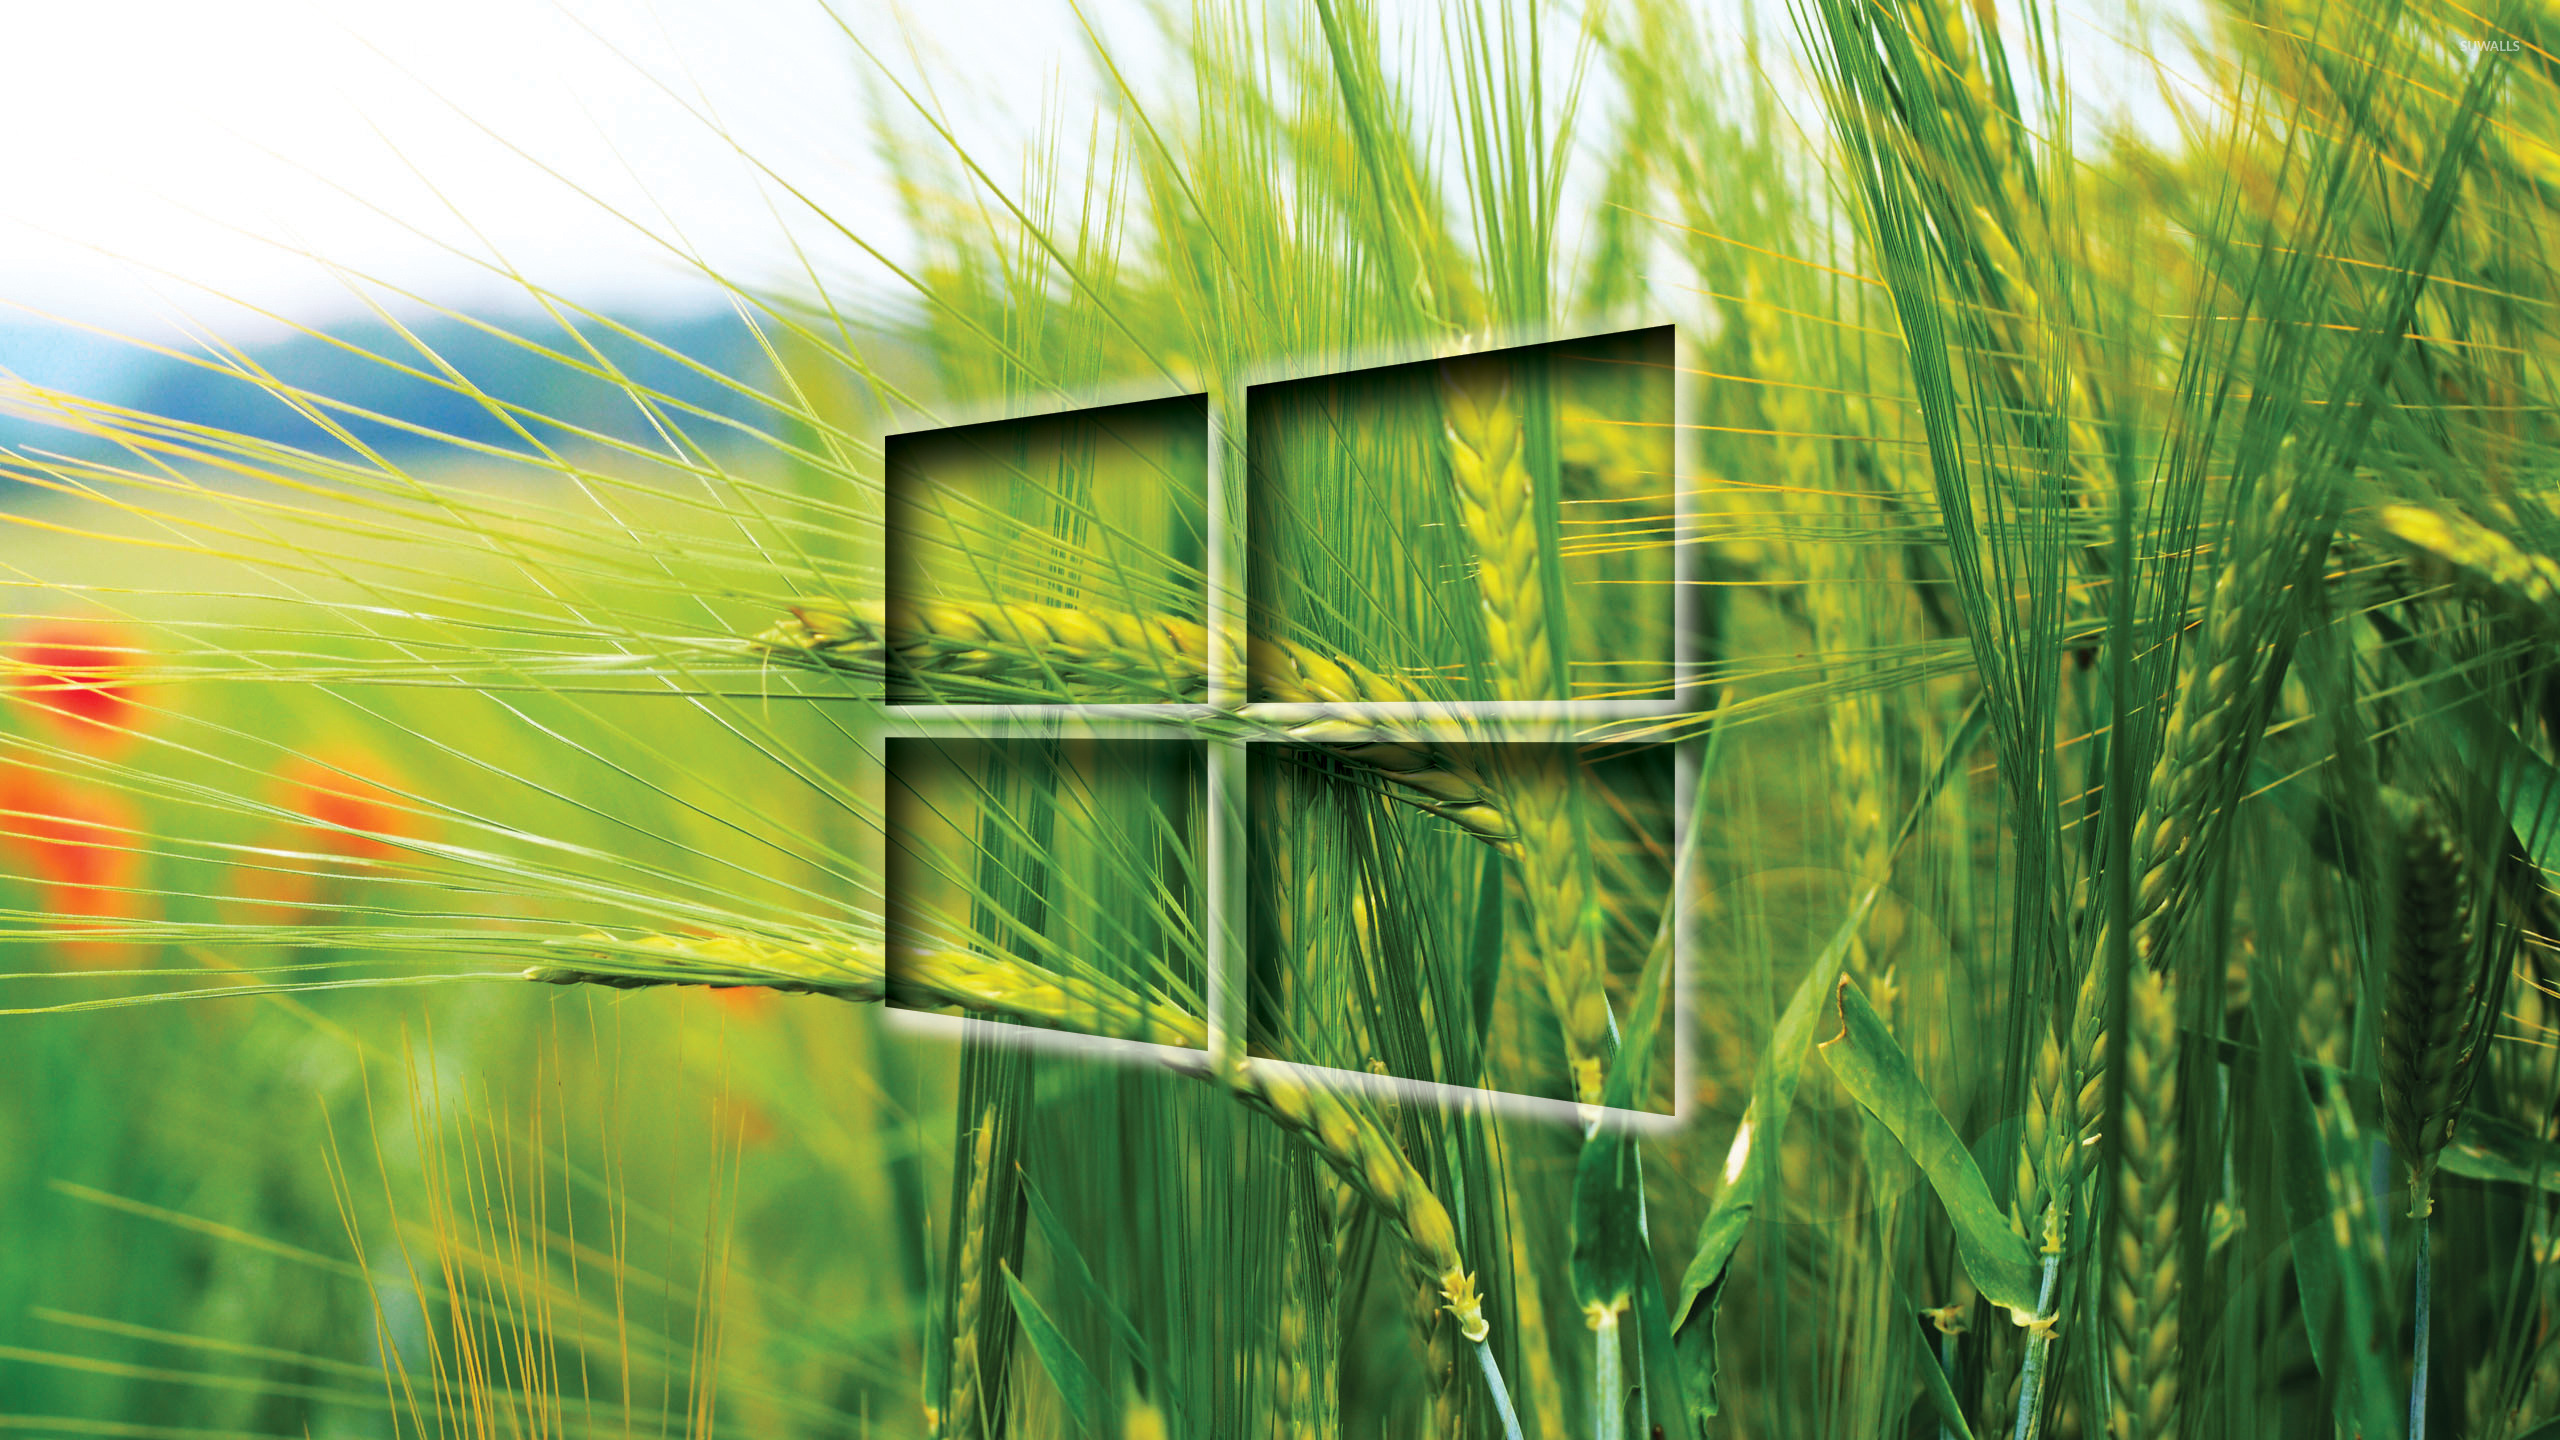 Windows 10 transparent logo on the wheat field wallpaper - Computer